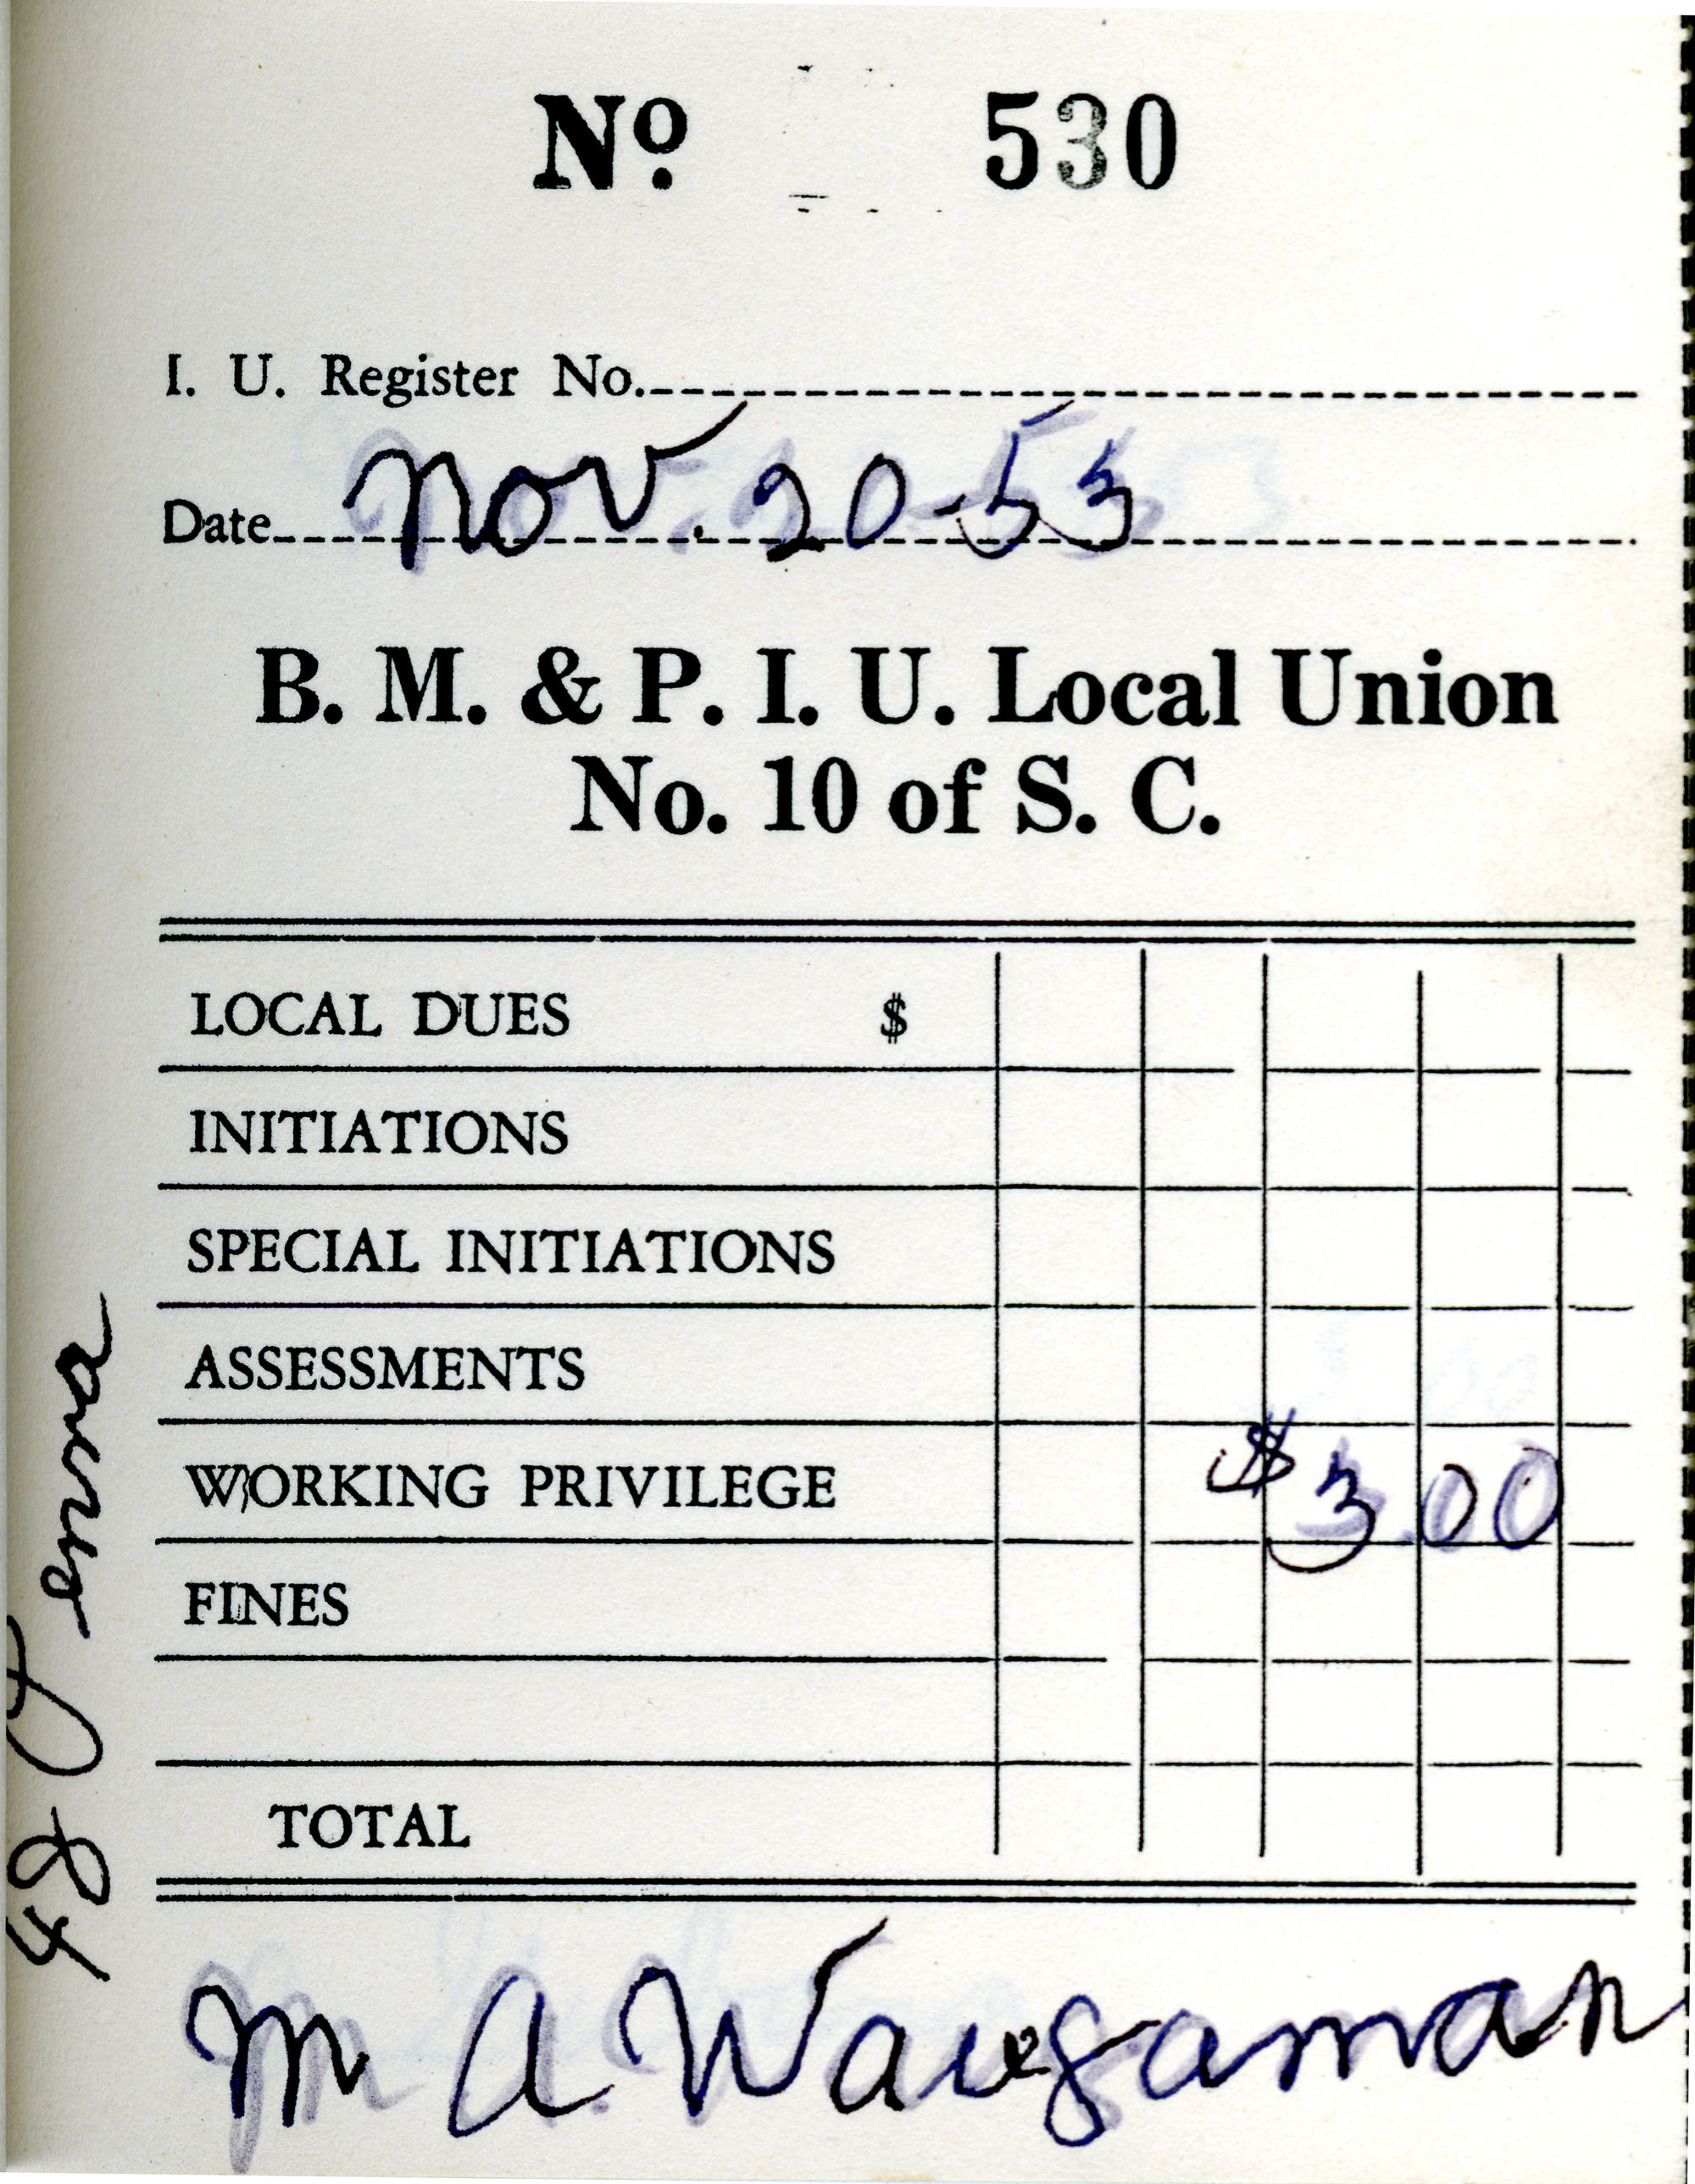 Receipt Book 2, Page 27